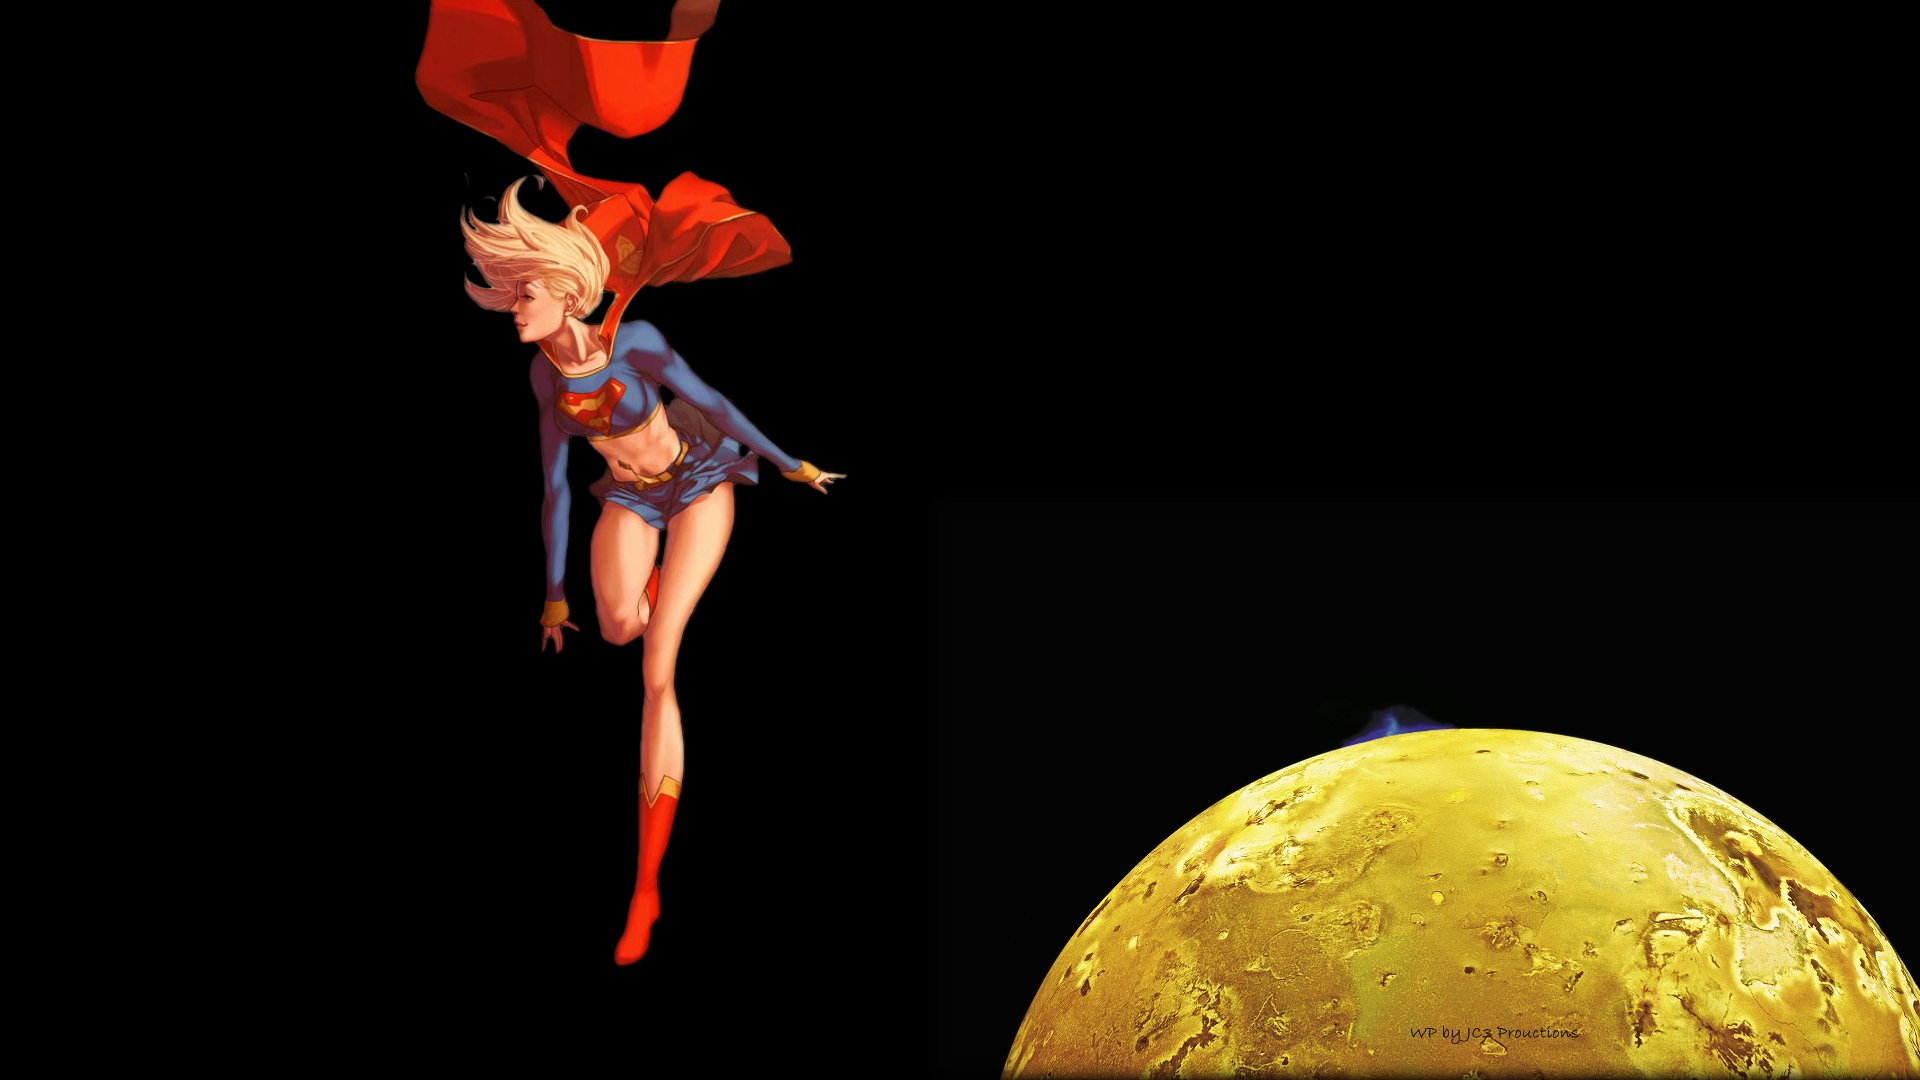 Supergirl in Space 1 by Curtdawg53